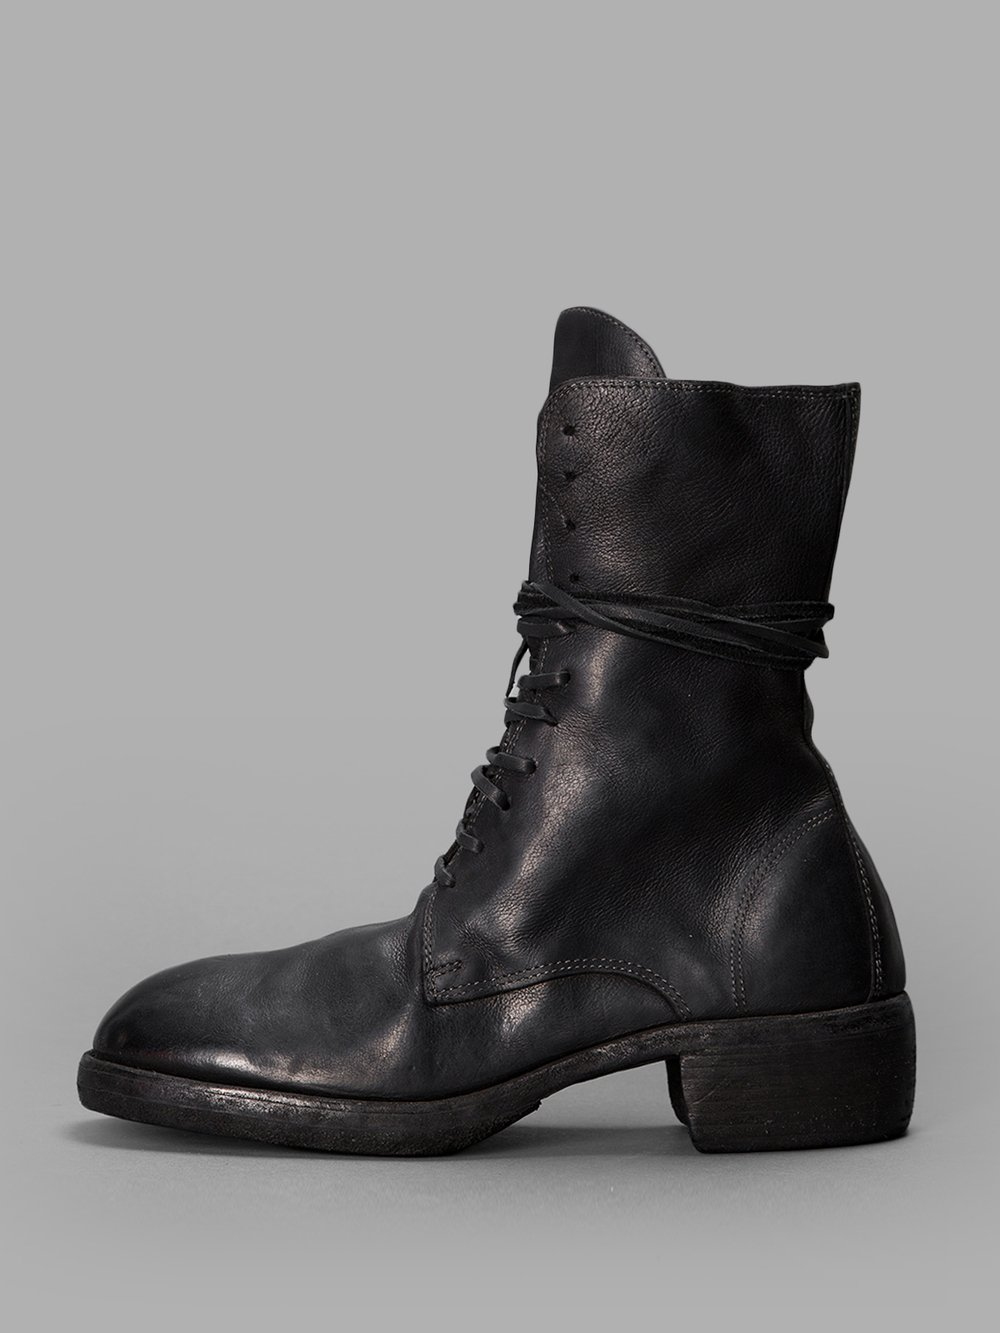 BLACK LEATHER BOOTS WITH LACES